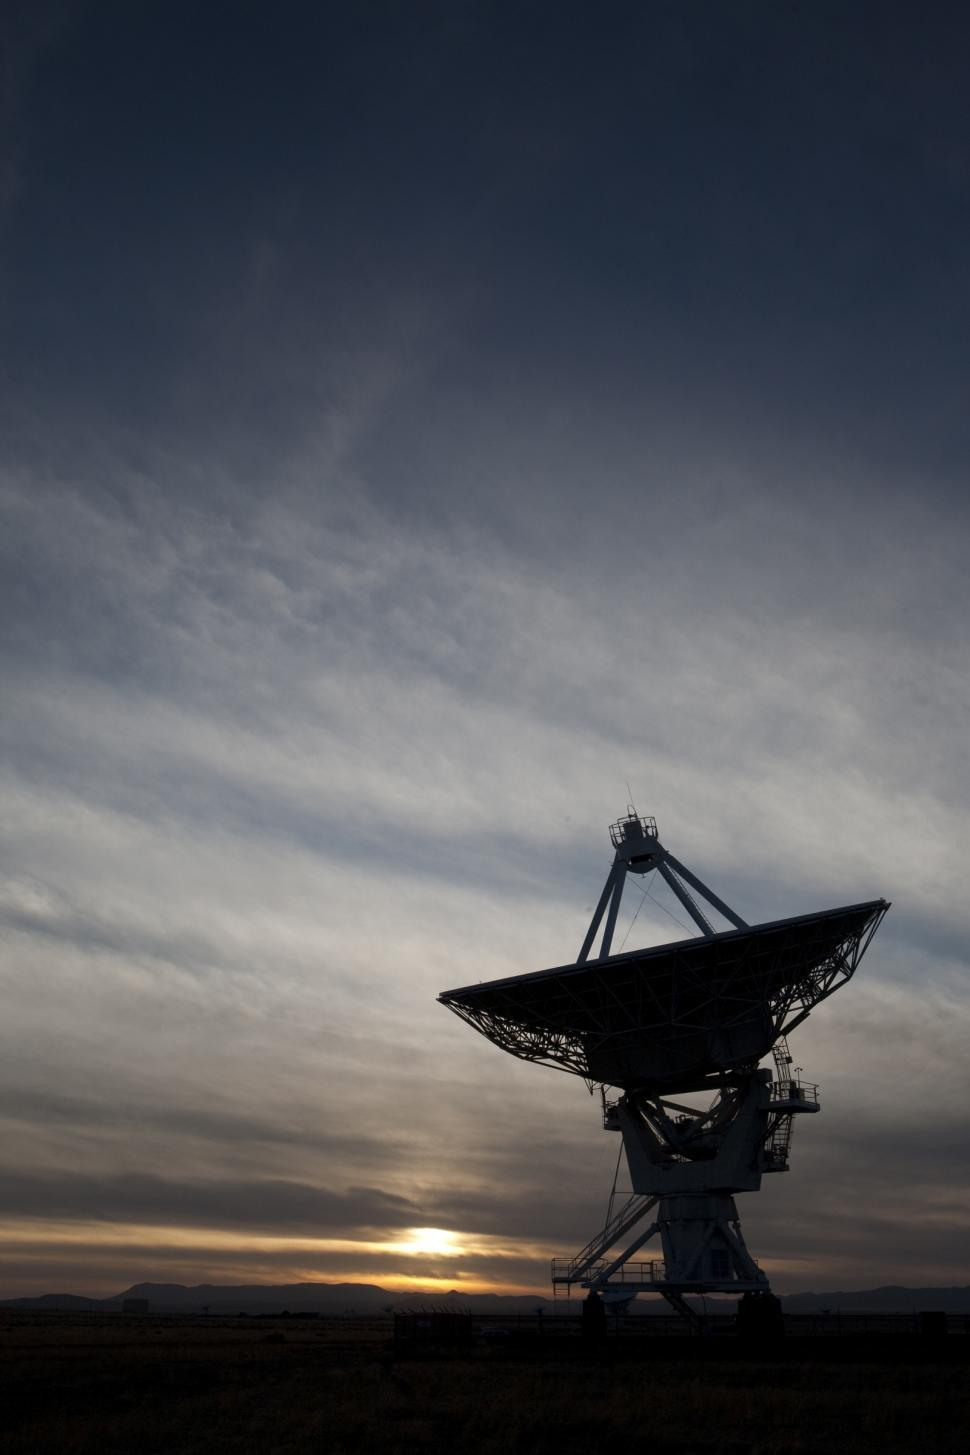 Free image of Radio Telescopes